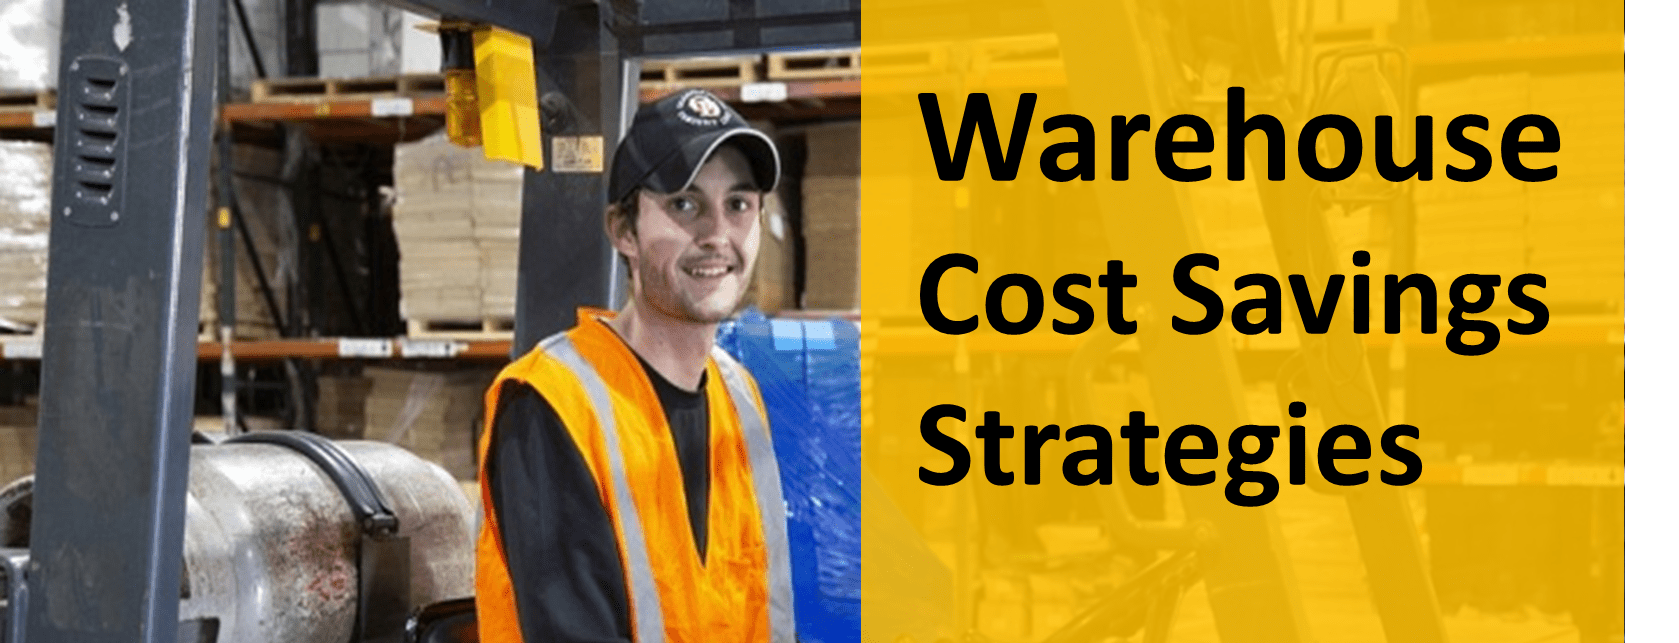 warehouse cost, Warehouse Cost Savings Strategies & Best Practices for Effective Labor Management, LogixGRID | Platform and Application for logistics management, LogixGRID | Platform and Application for logistics management